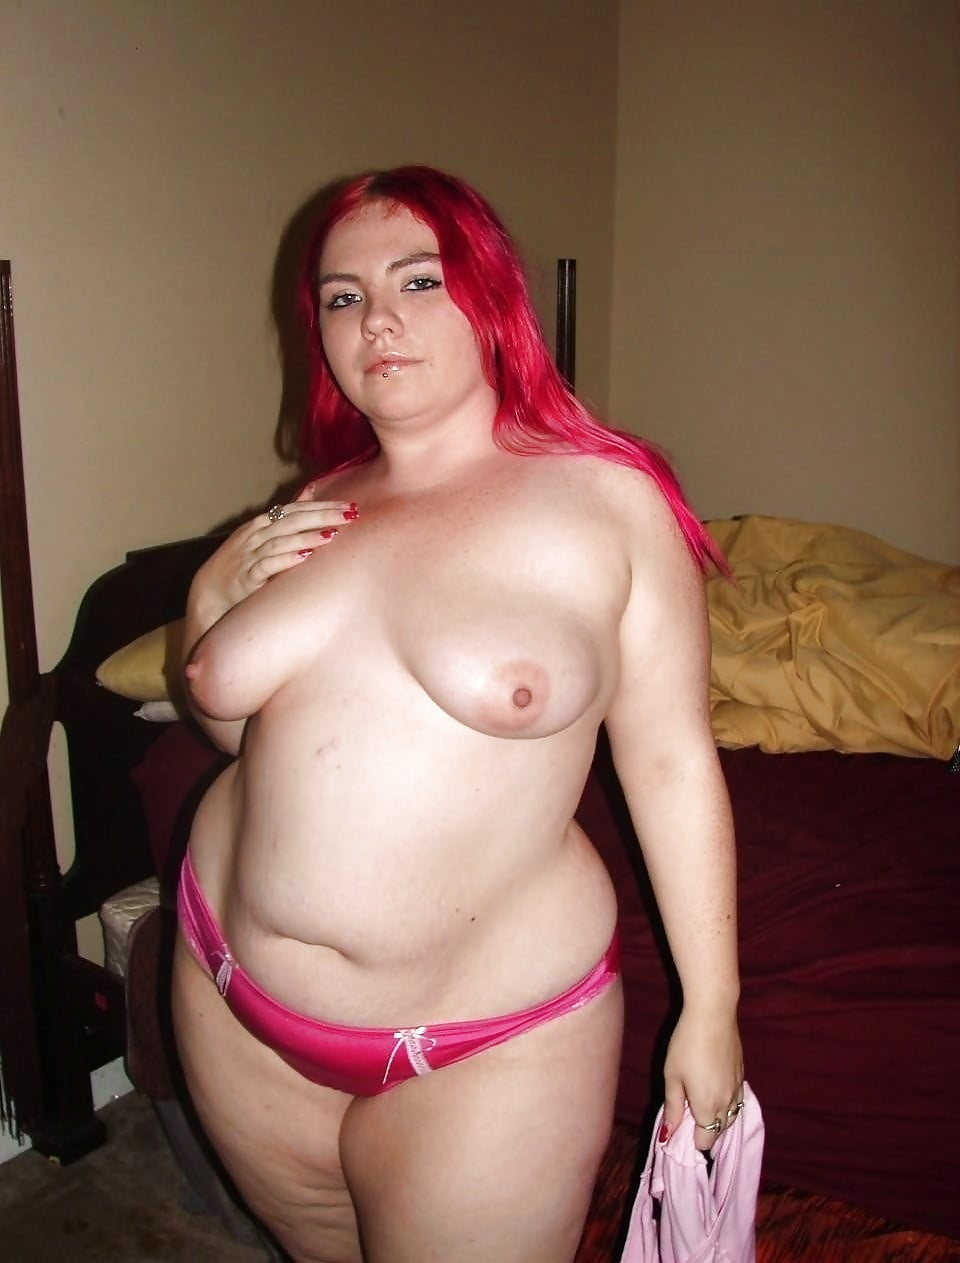 Full nude pic of fat girls — pic 11